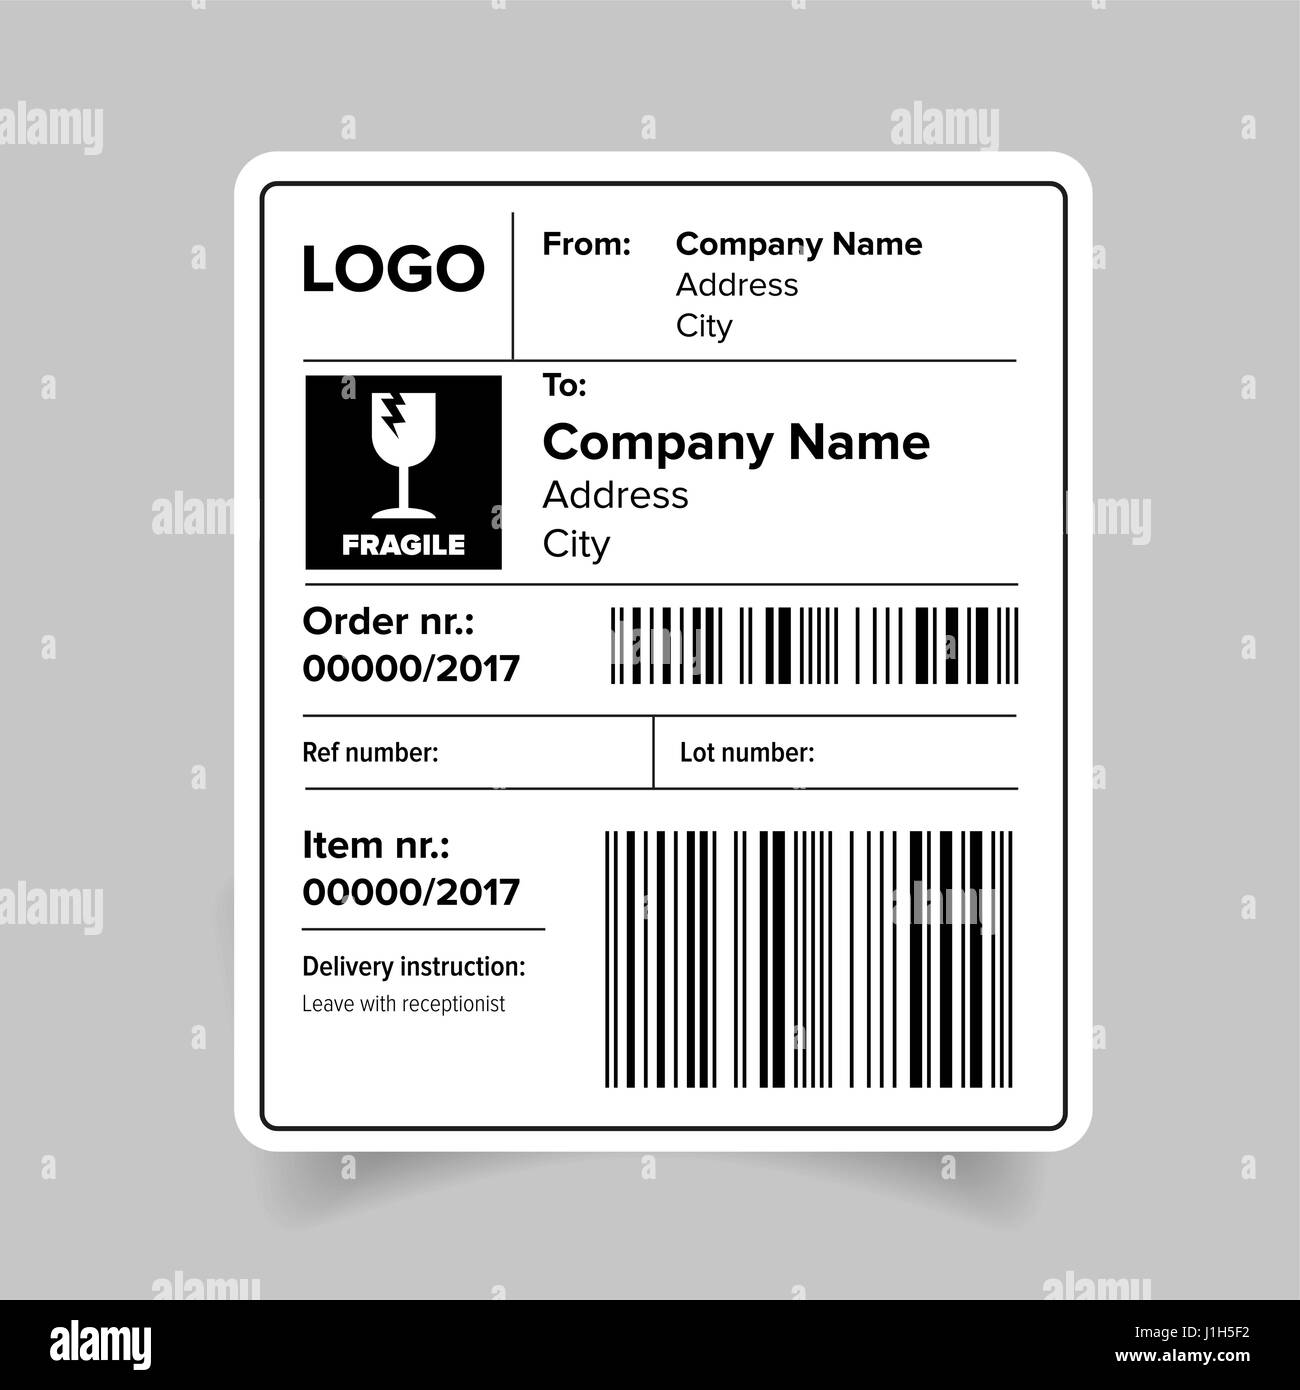 Shipping Label Template Stock Vector Art Illustration Vector - Package label template